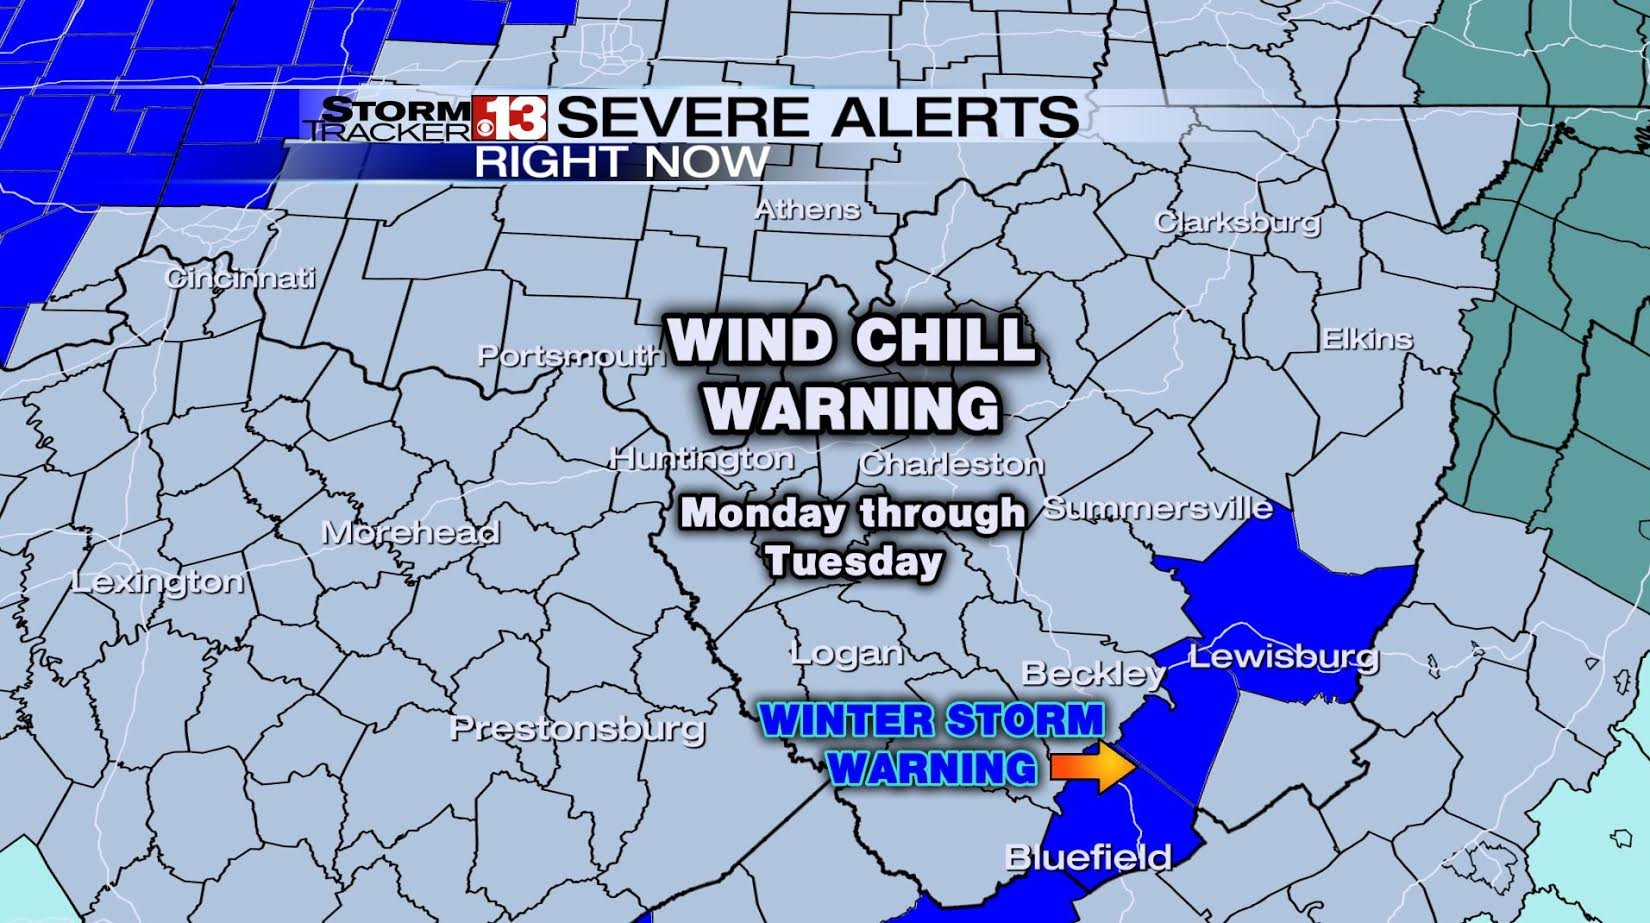 Wind Chill Warning and Winter Storm Warning